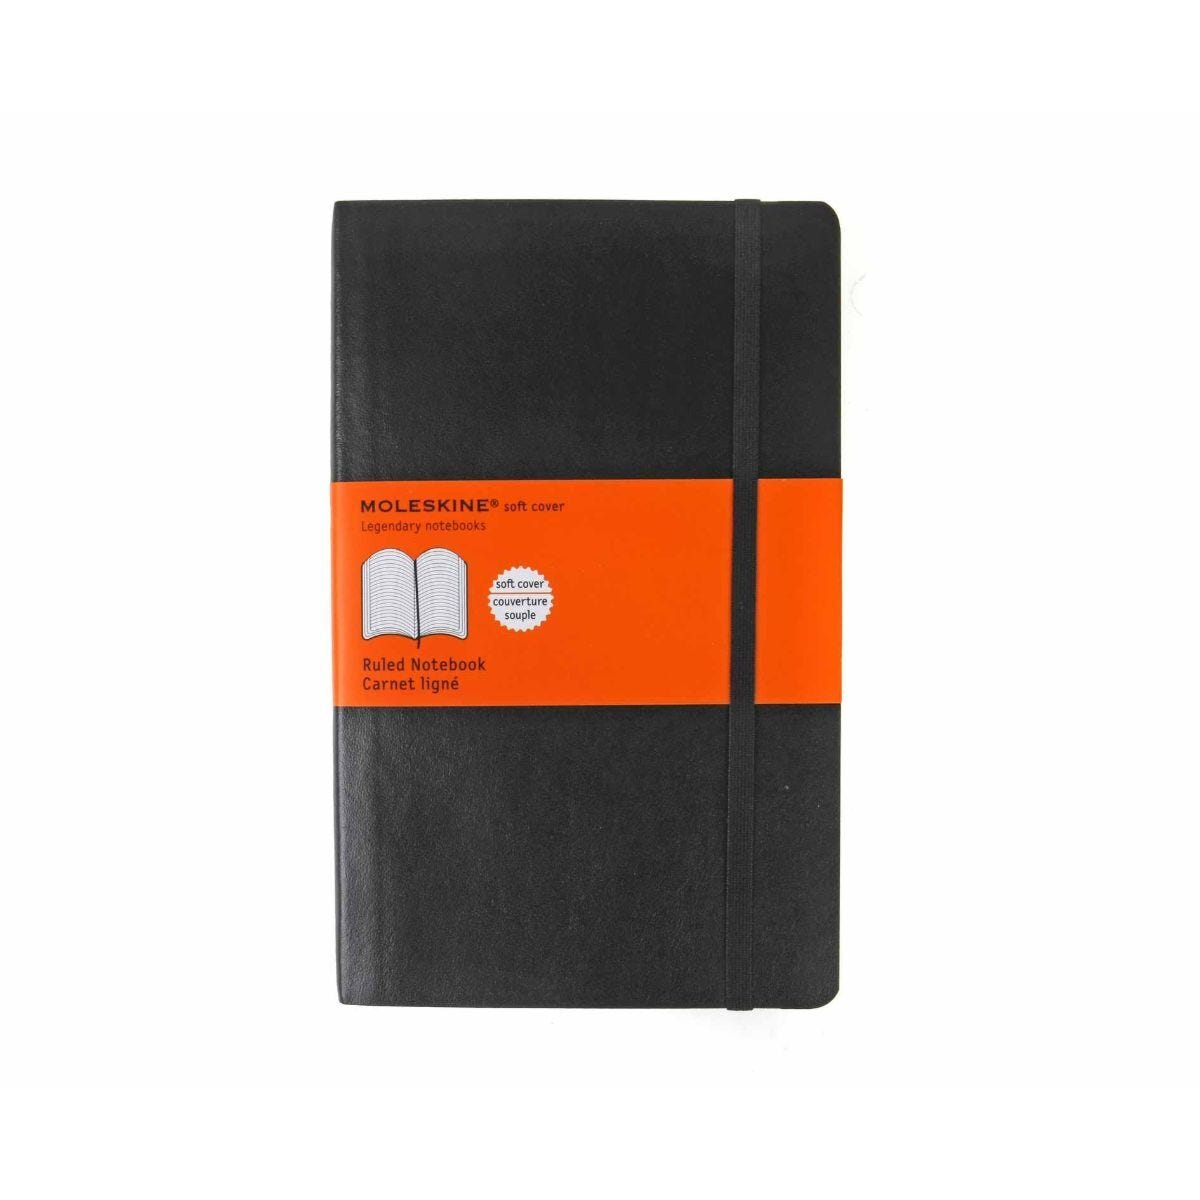 Moleskine Notebook Soft Cover Large Ruled 210x130mm 192 Pages 96 Sheets